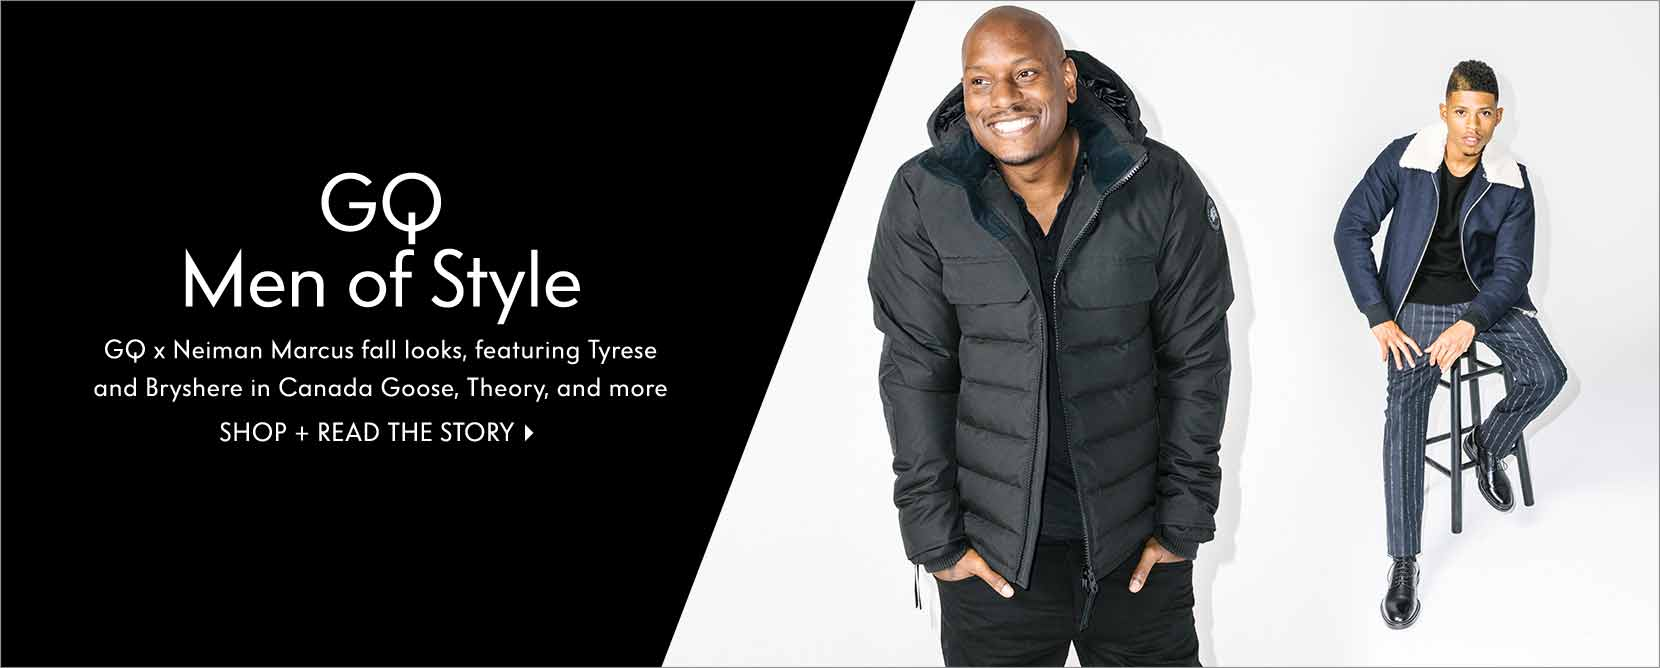 GQ Men of Style: GQ x Neiman Marcus fall looks, featuring Tyrese and Bryshere in Canada Goose, Theory, and more Shop + read the story